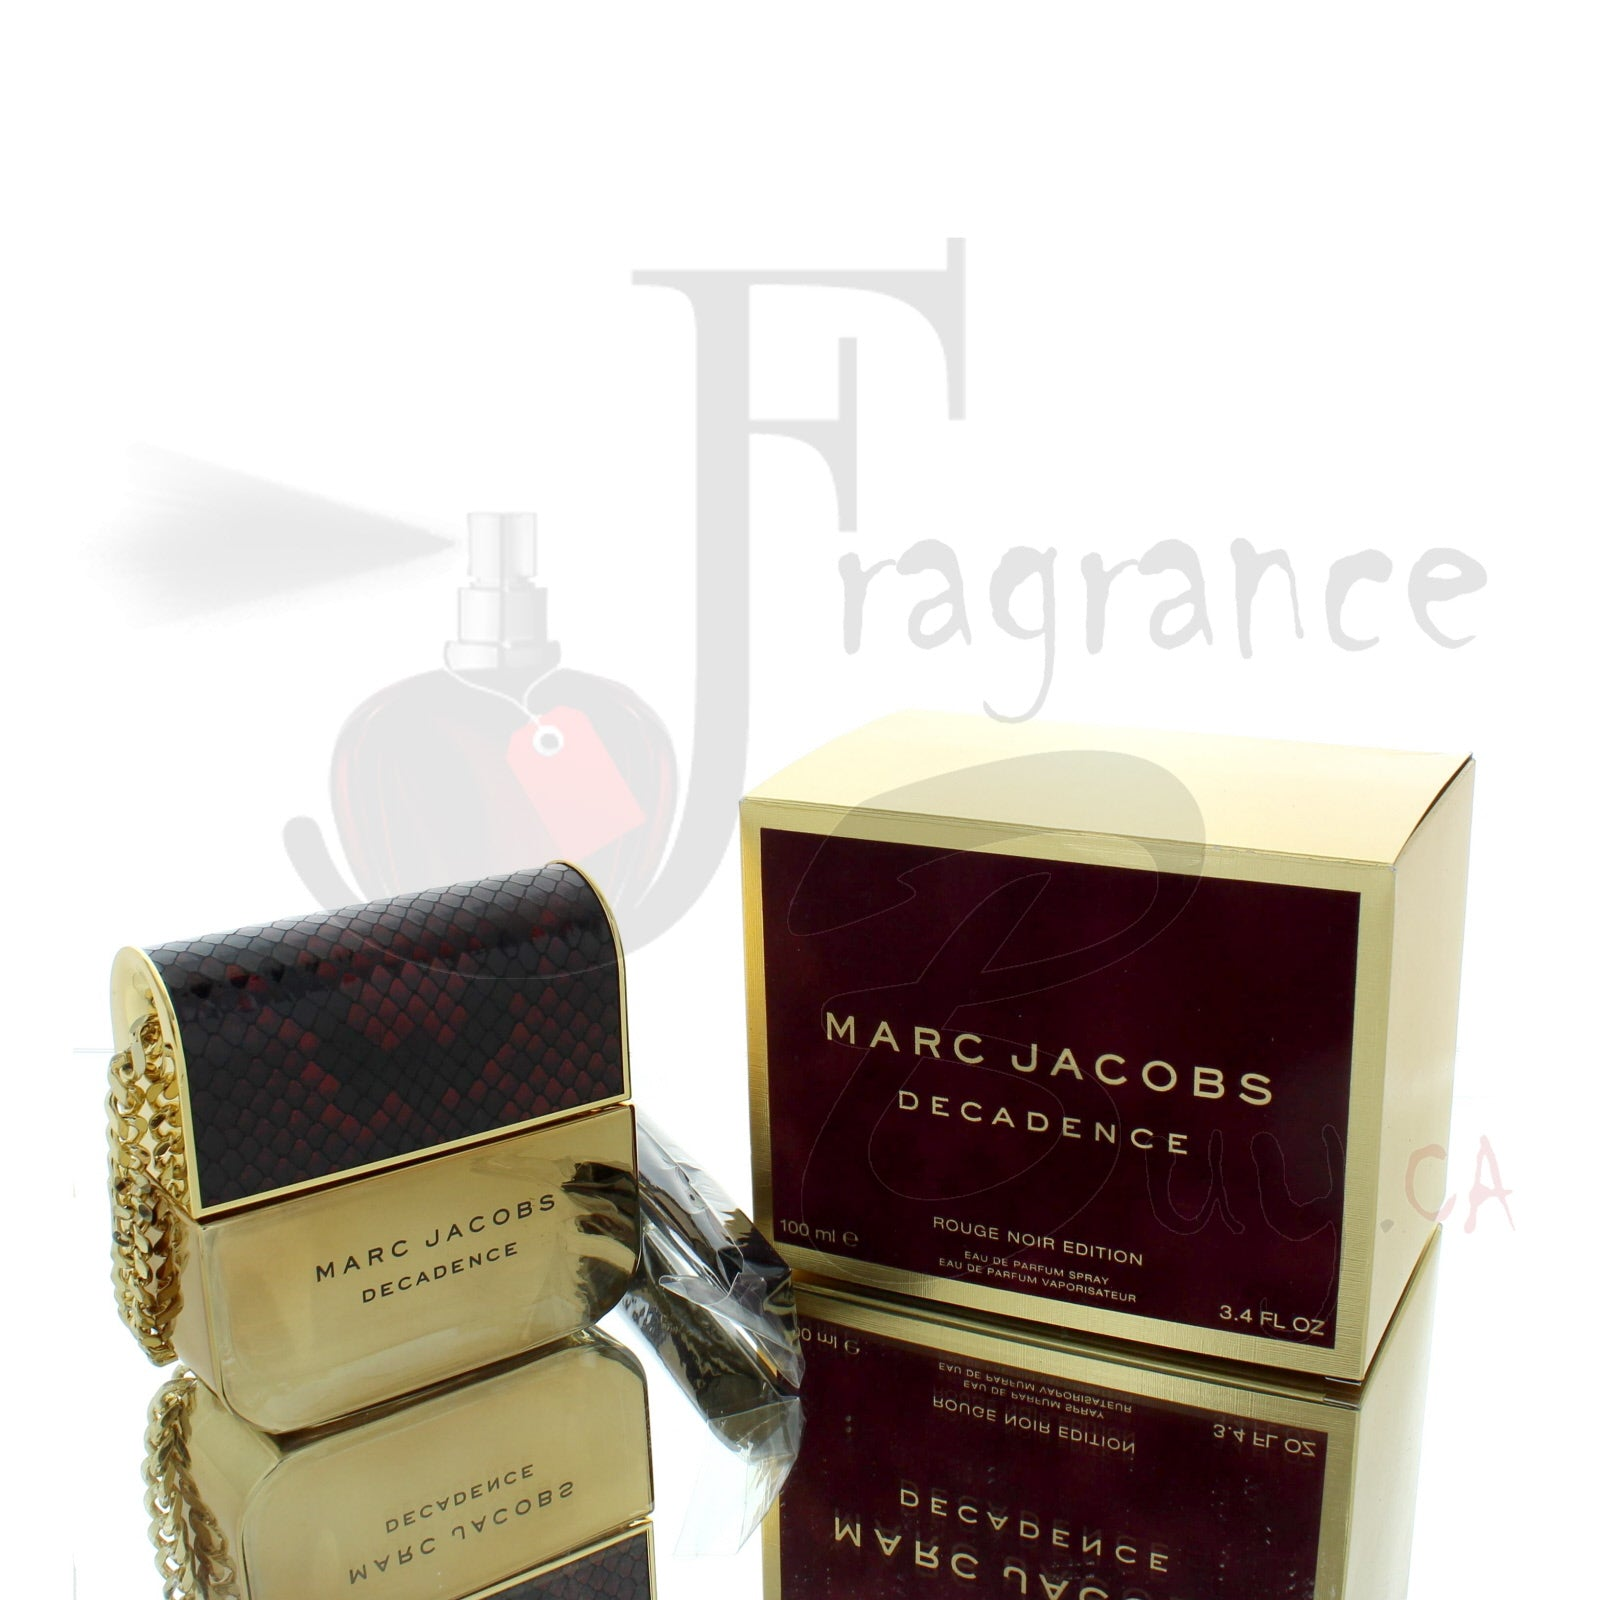 Marc Jacobs Decadence Rouge Noir Edition For Woman